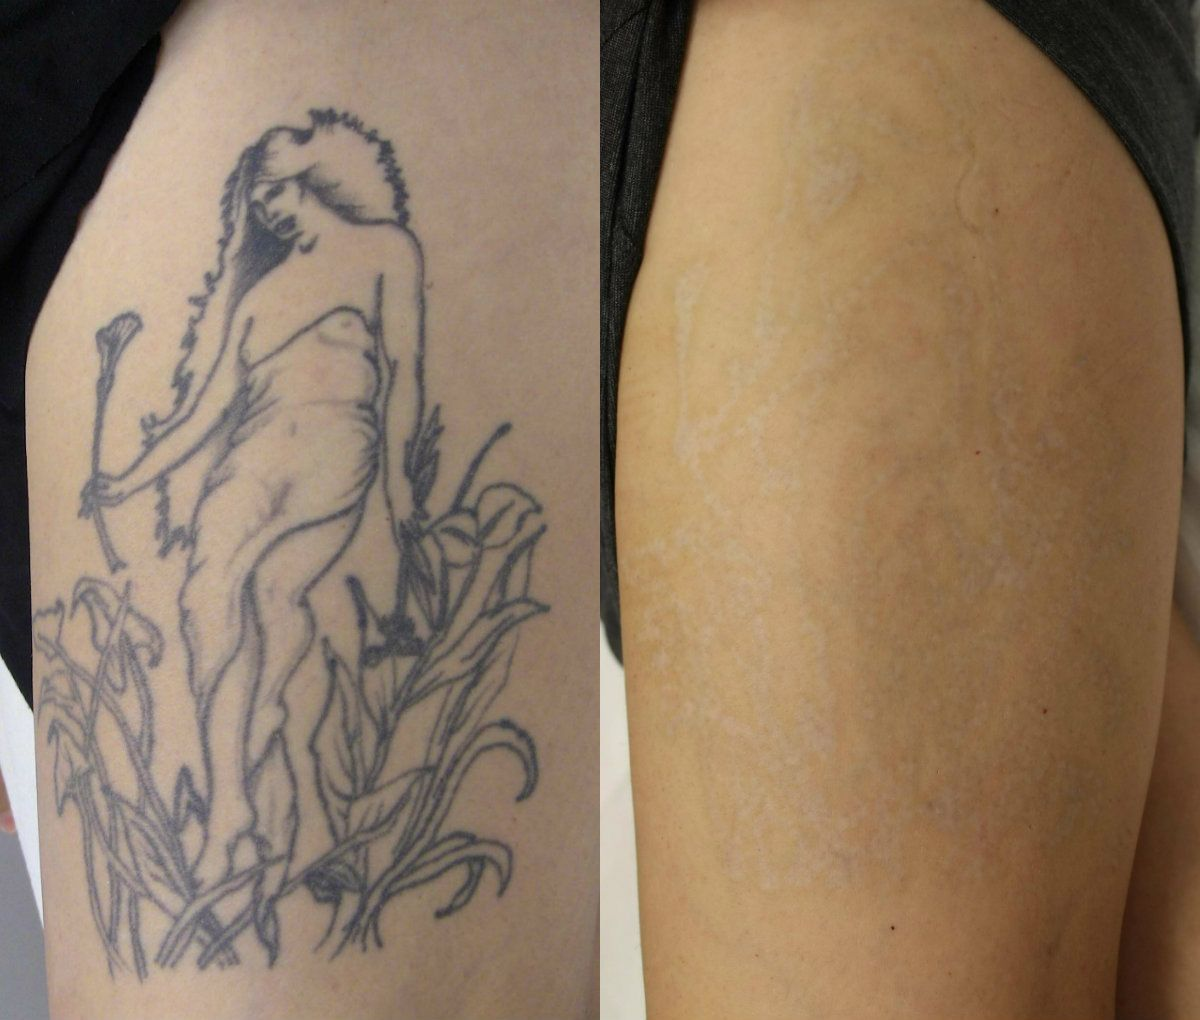 Tattoo Temoval Before And After Pictures Tattoo Removal Ideas And Designs